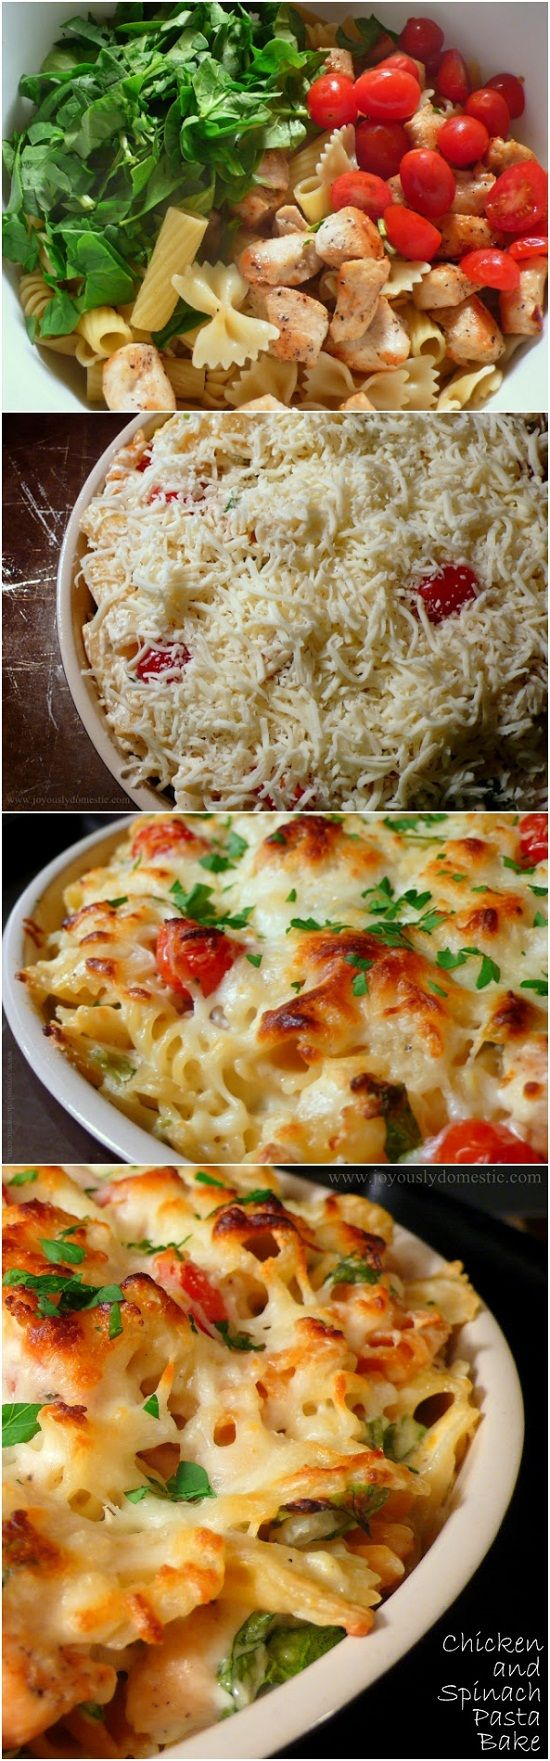 Chicken & Spinach Pasta Bake Recipe